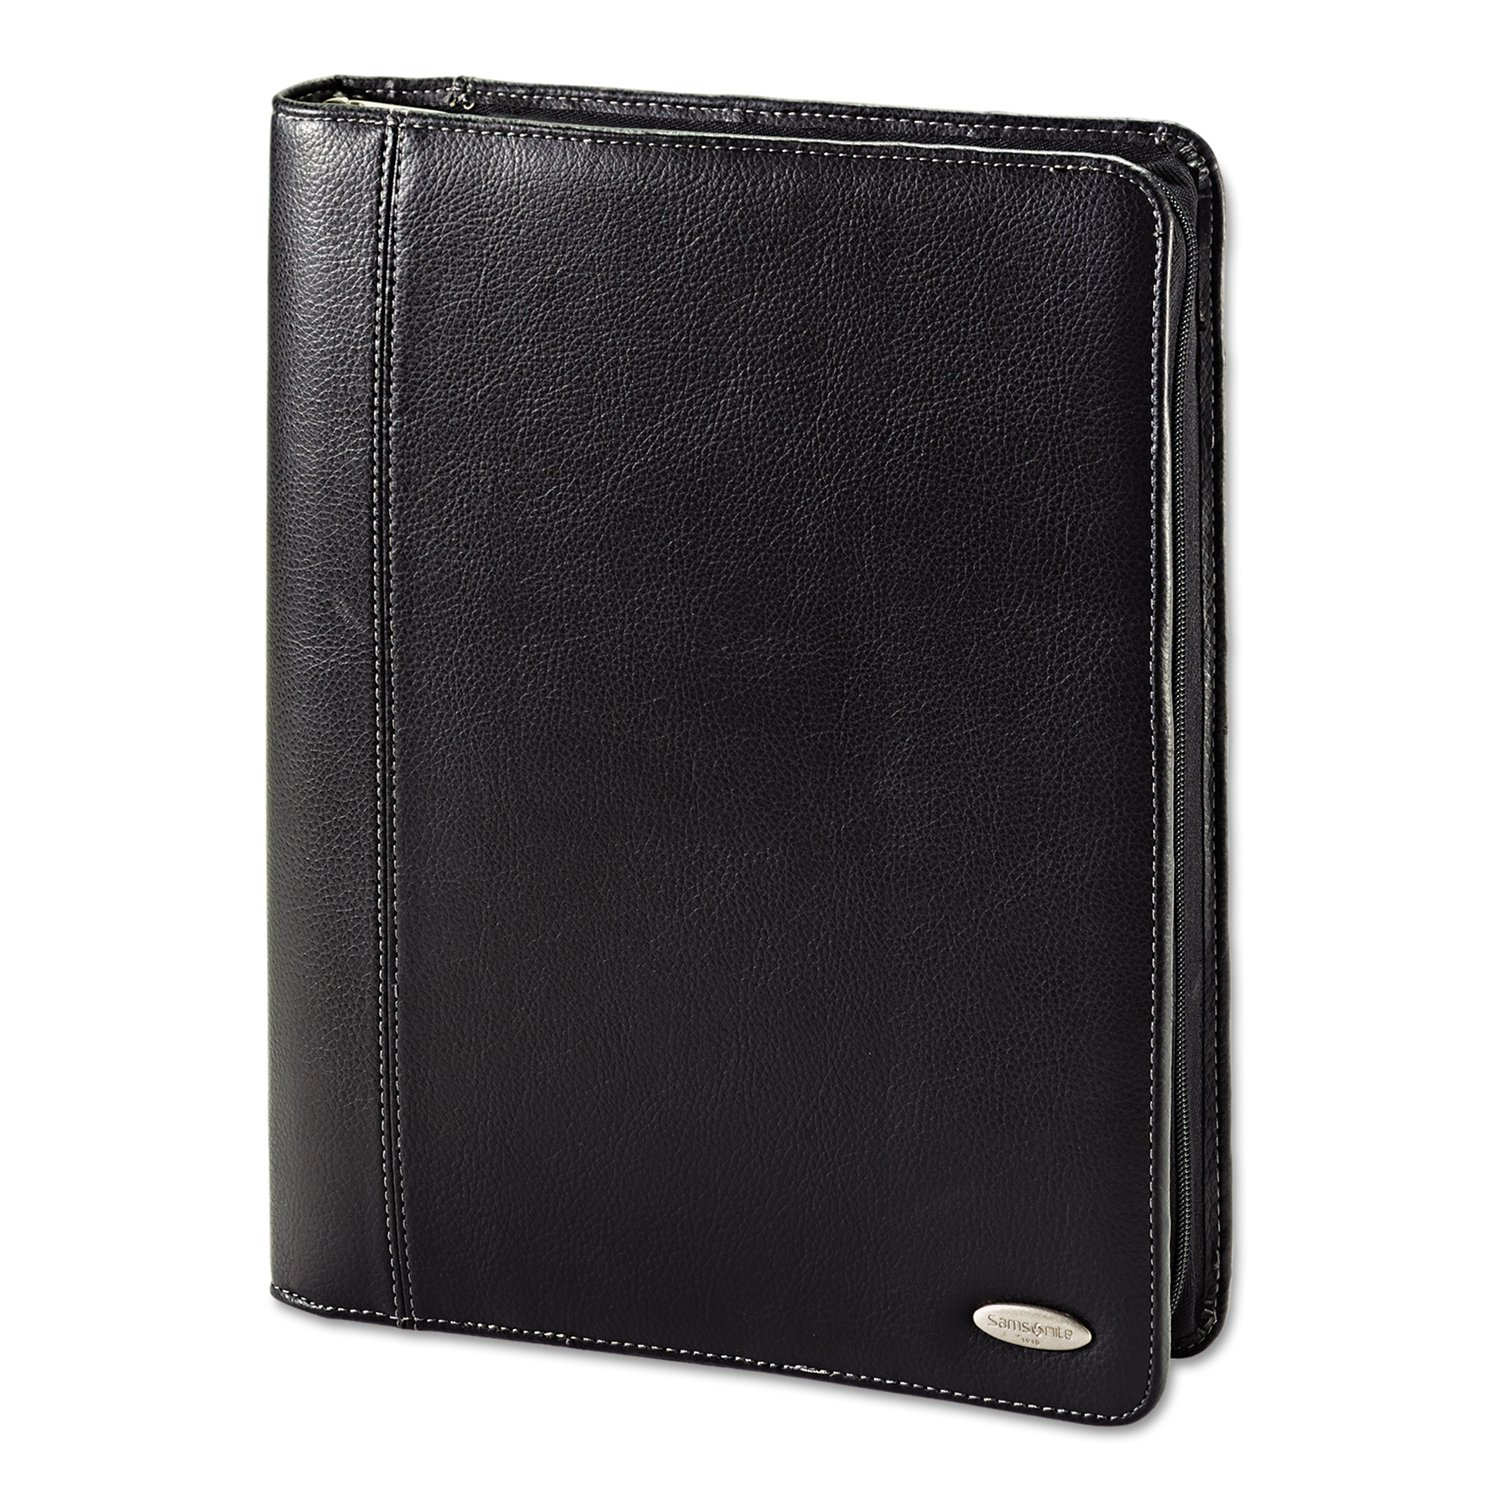 Samsonite Cosco Zip Bi-Fold Pad folio, 8 1/2 x 11, Black (961145)